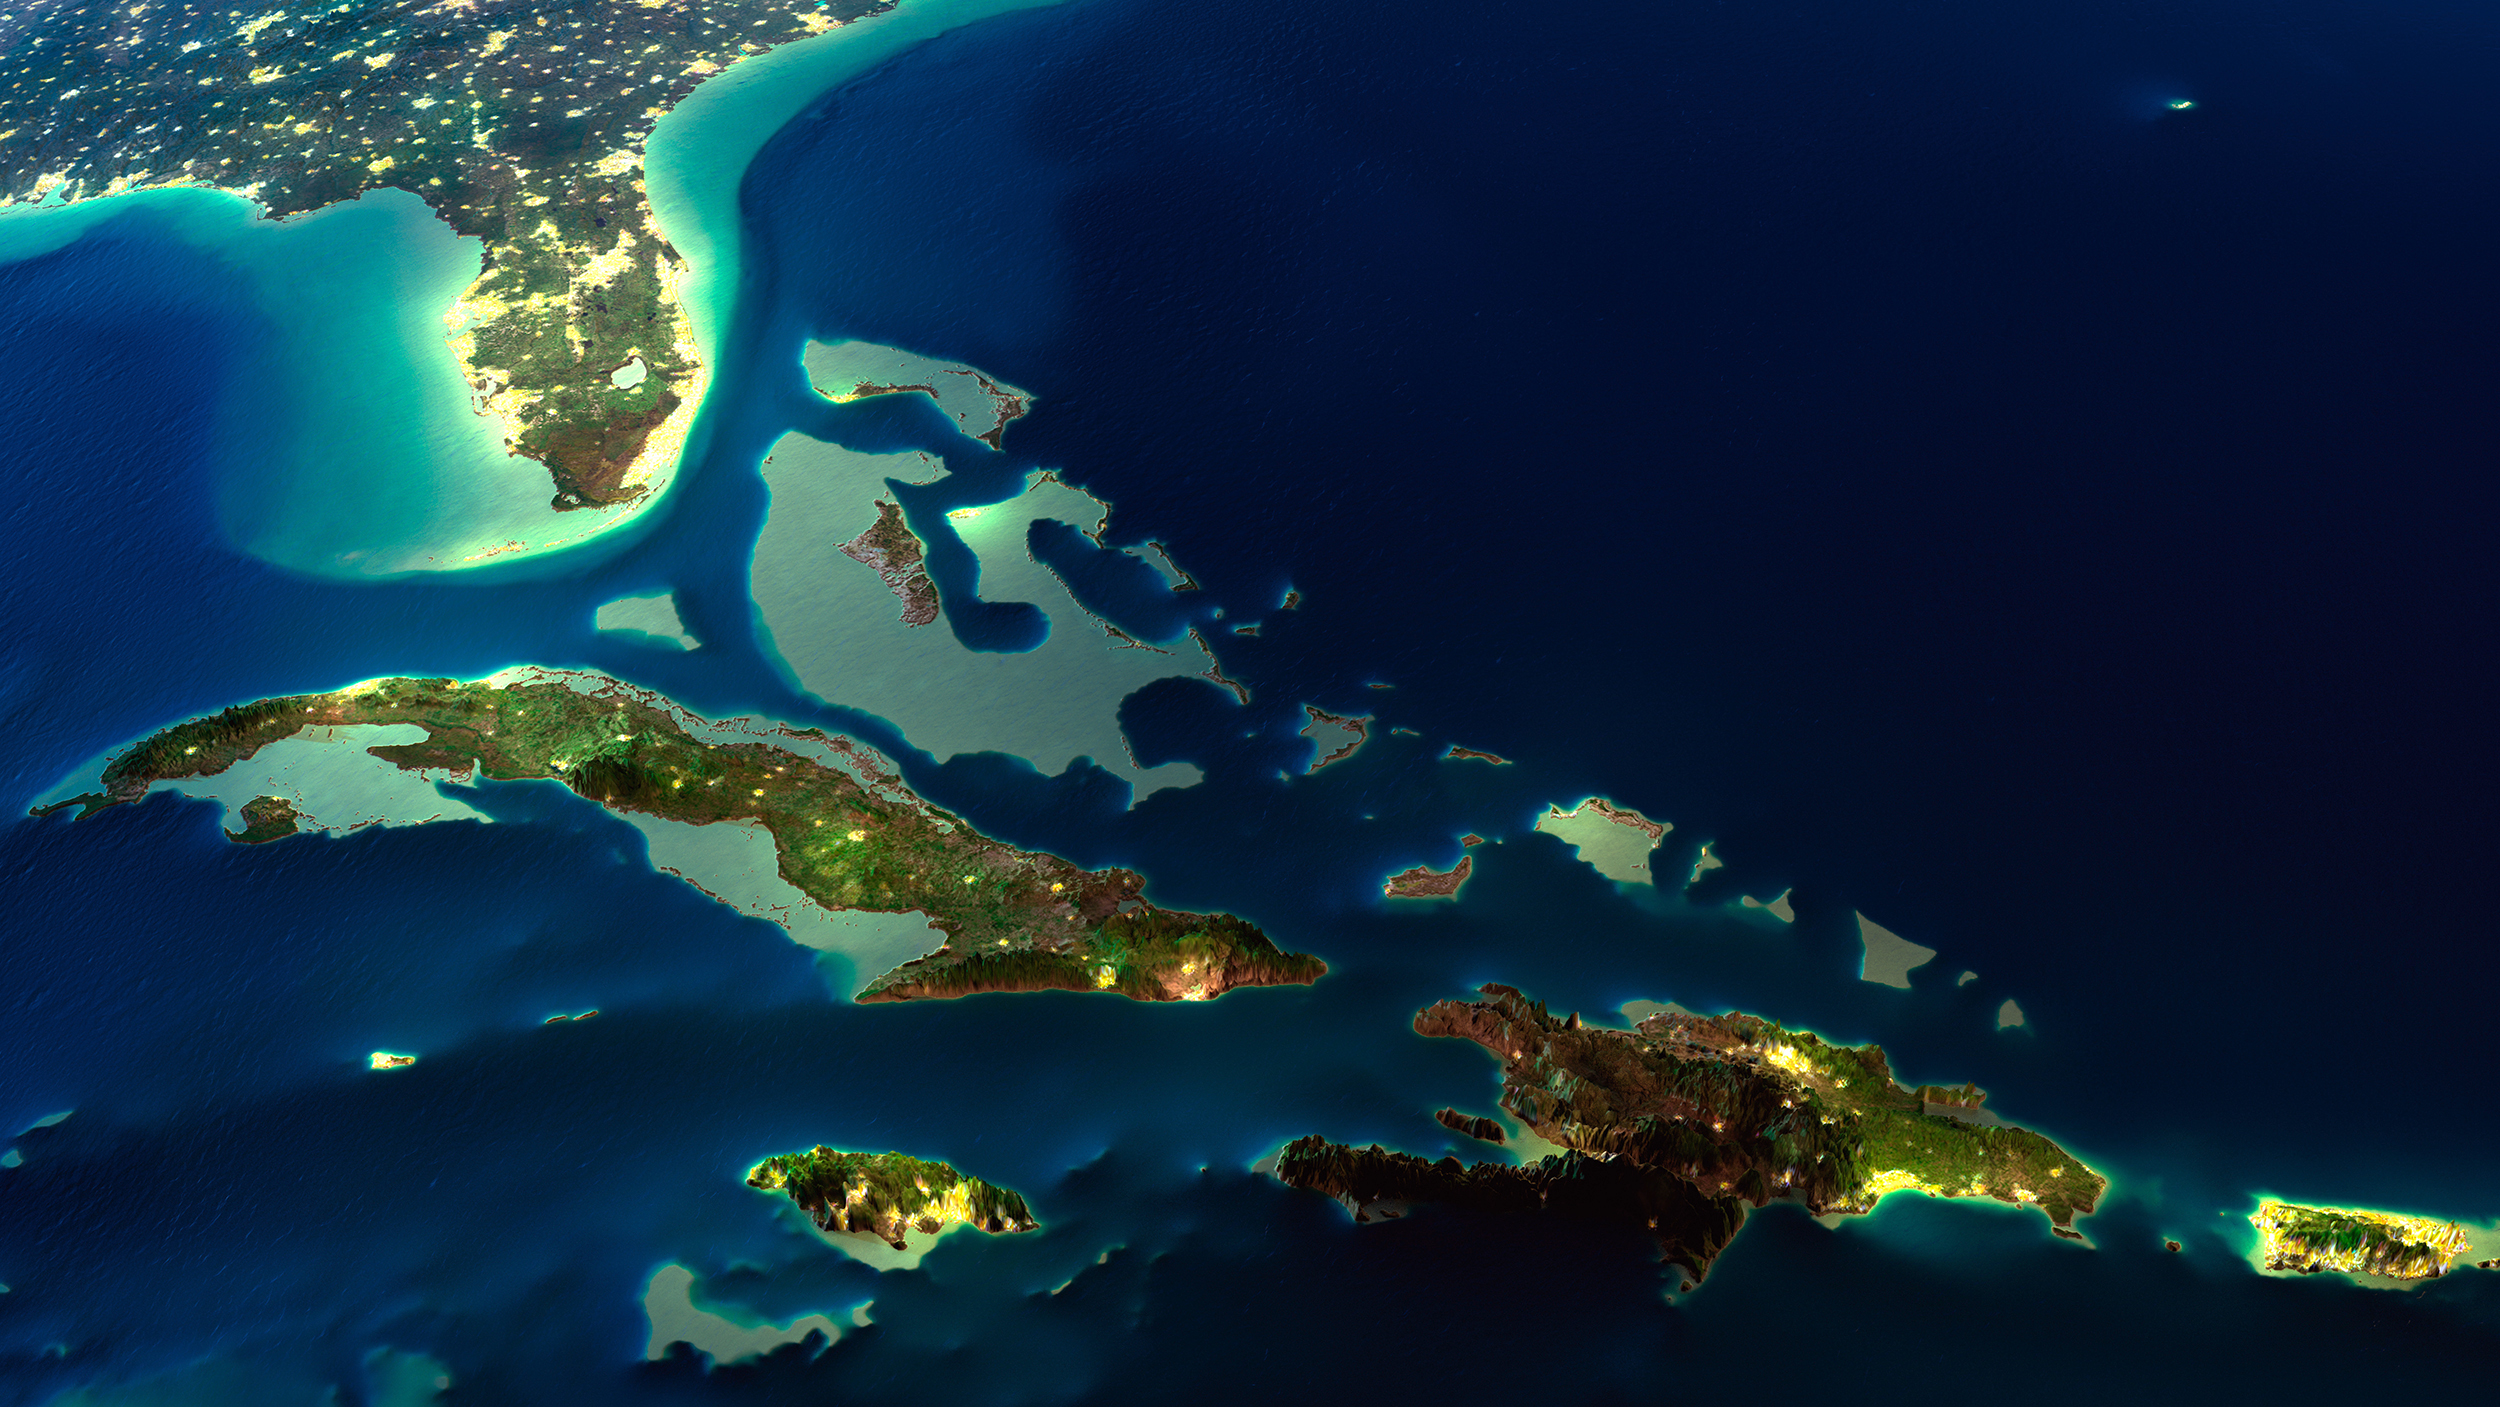 Bermuda Triangle mystery solved? Scientists point to